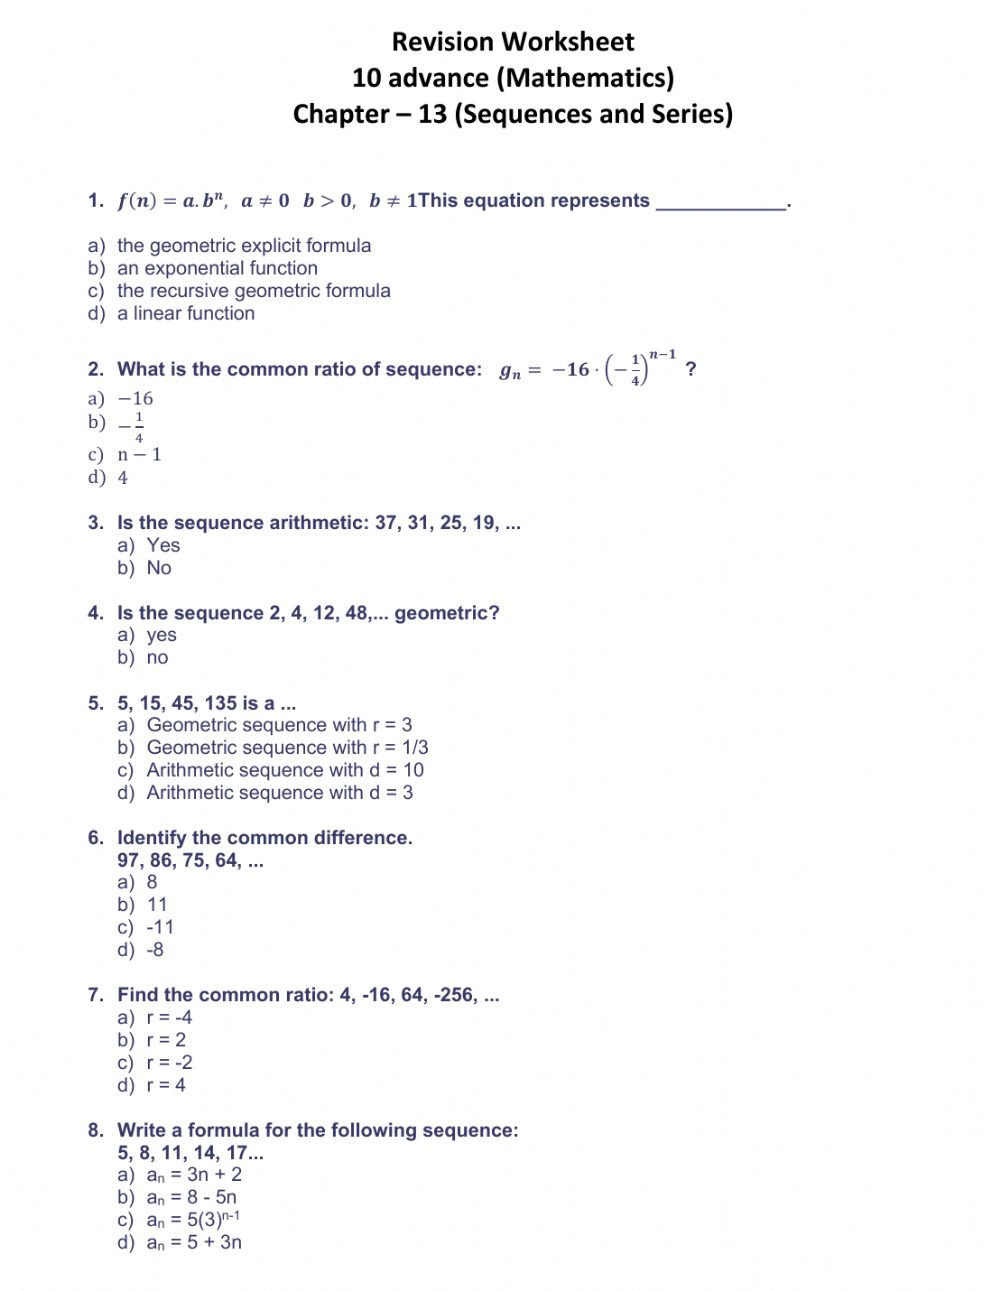 Sequences and Series CH 13 10A Interactive worksheet